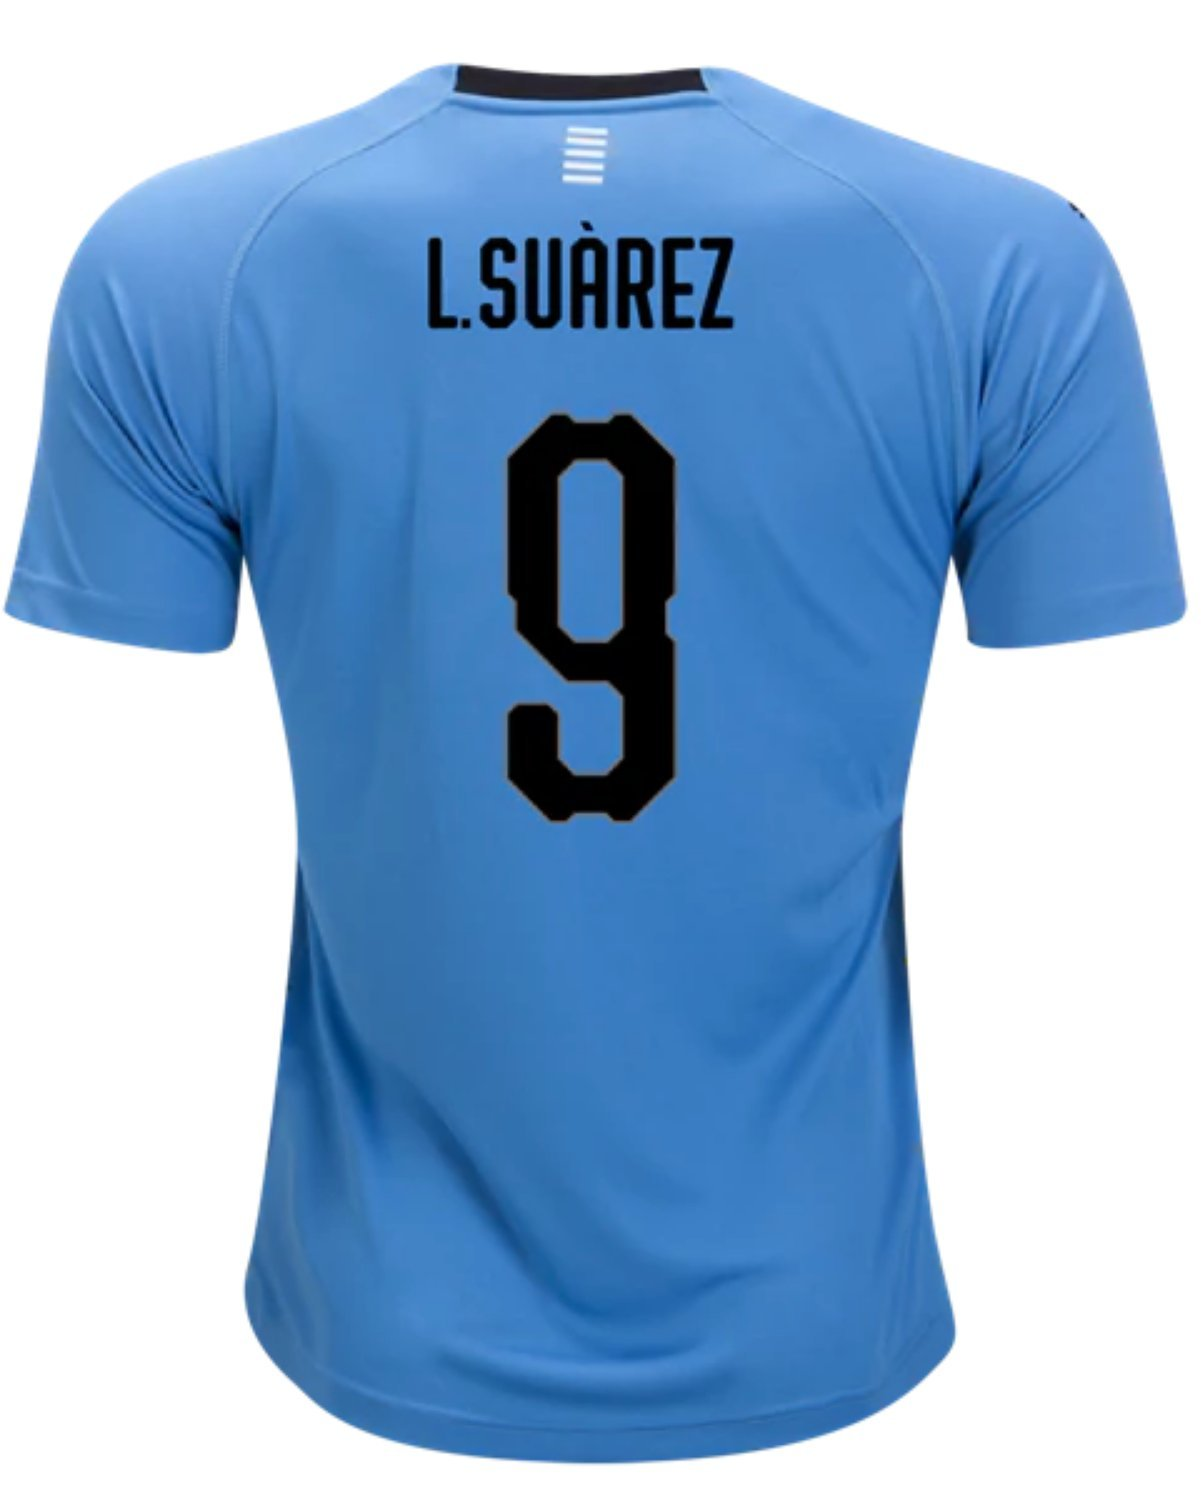 2f3ee0bdc Suarez #9 Uruguay Soccer Jersey Youth World Cup Home Short Sleeve with  Shorts Kit Kids